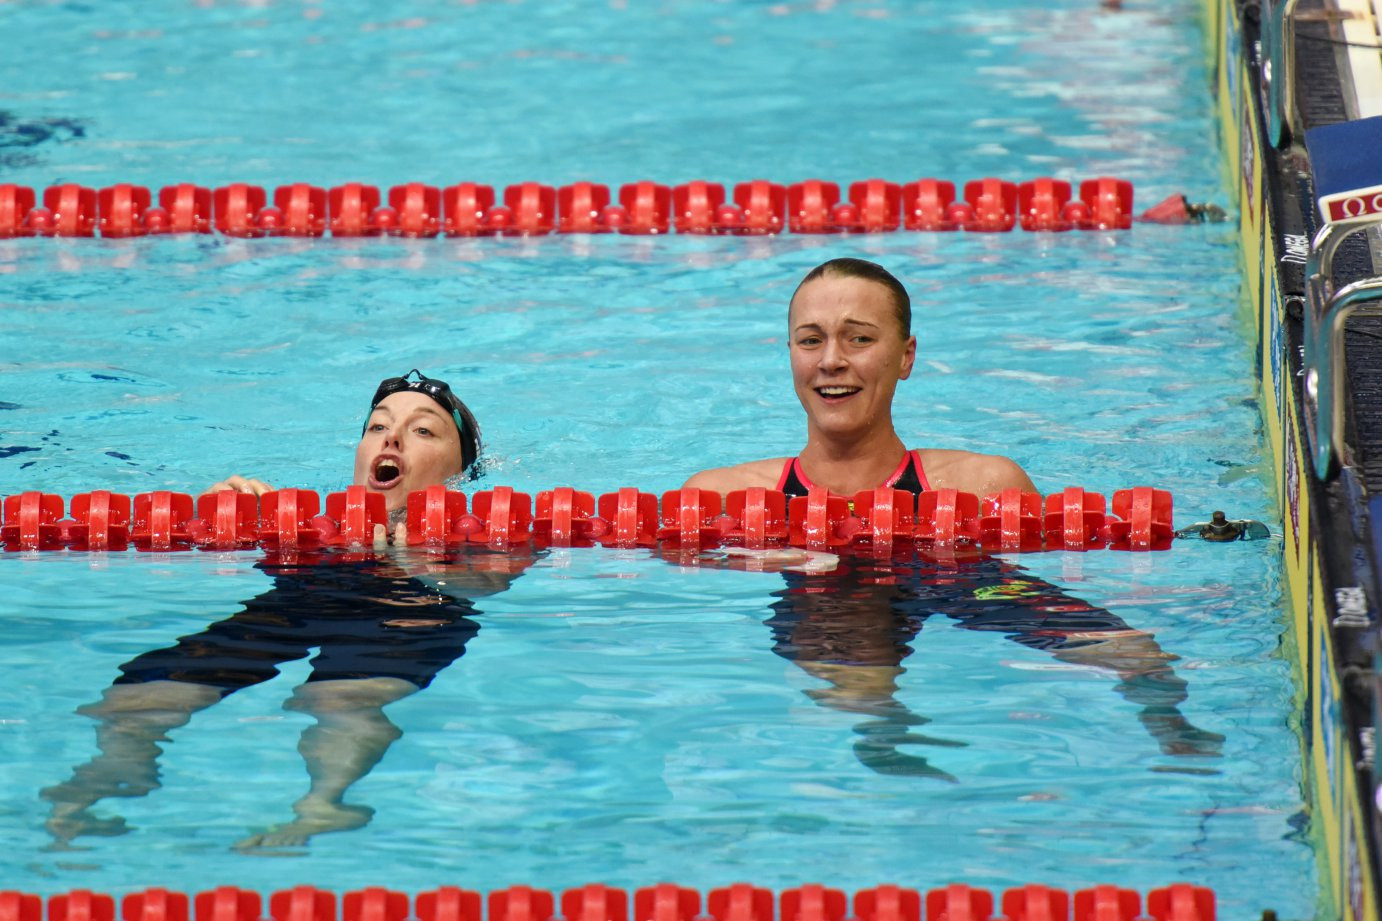 Sweden's defending overall World Cup champion Sarah Sjostrum, right, set a World Cup record in winning the 100m freestyle at Kazan in Russia today ©Getty Images